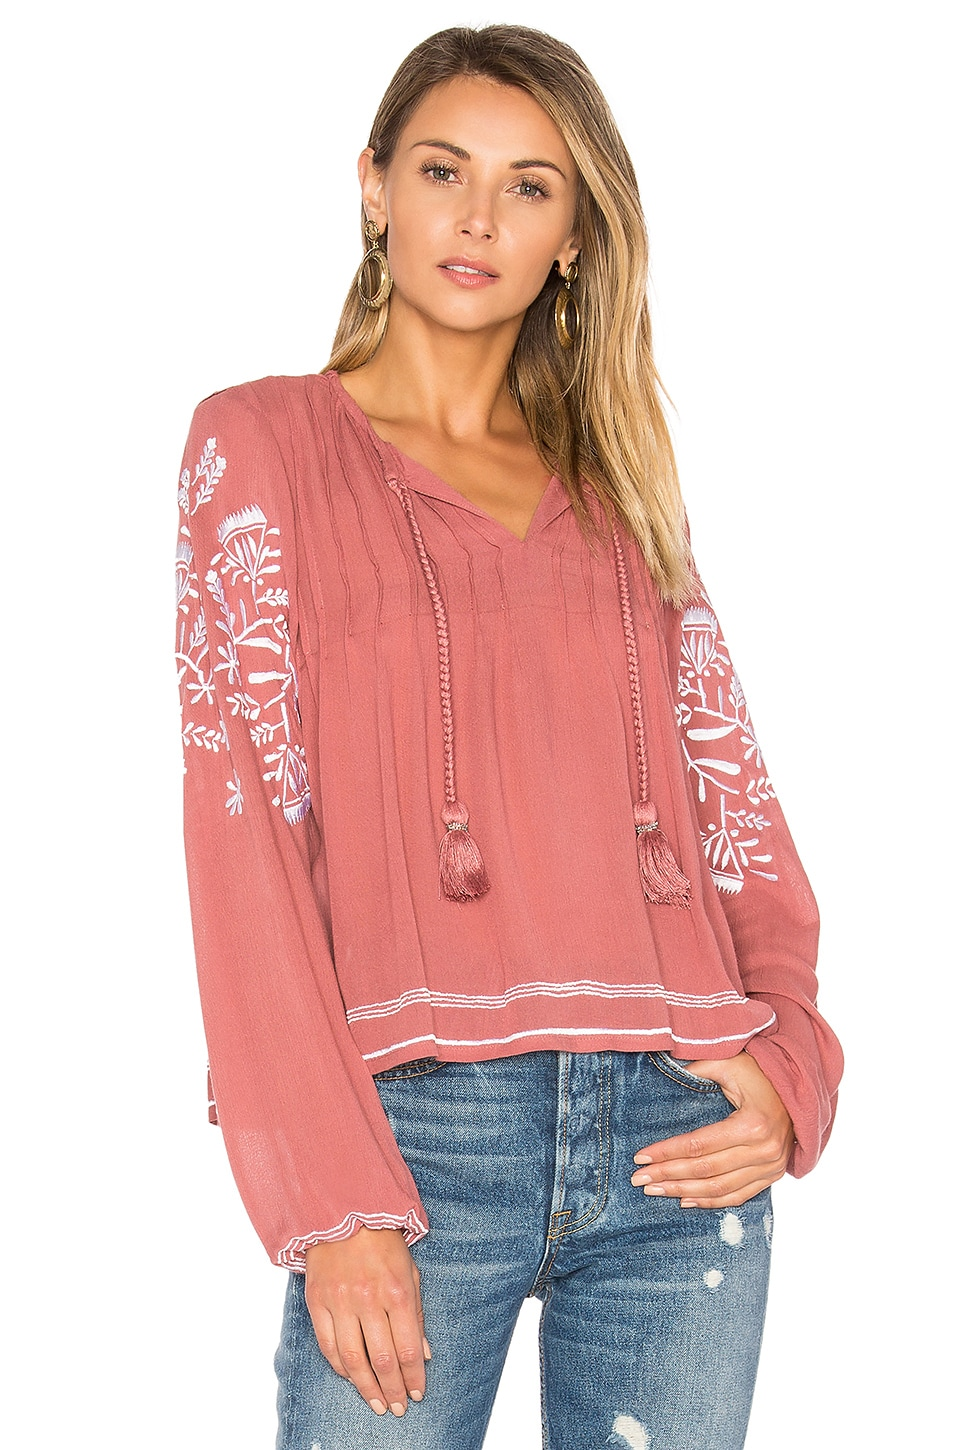 Rose Top by Tularosa